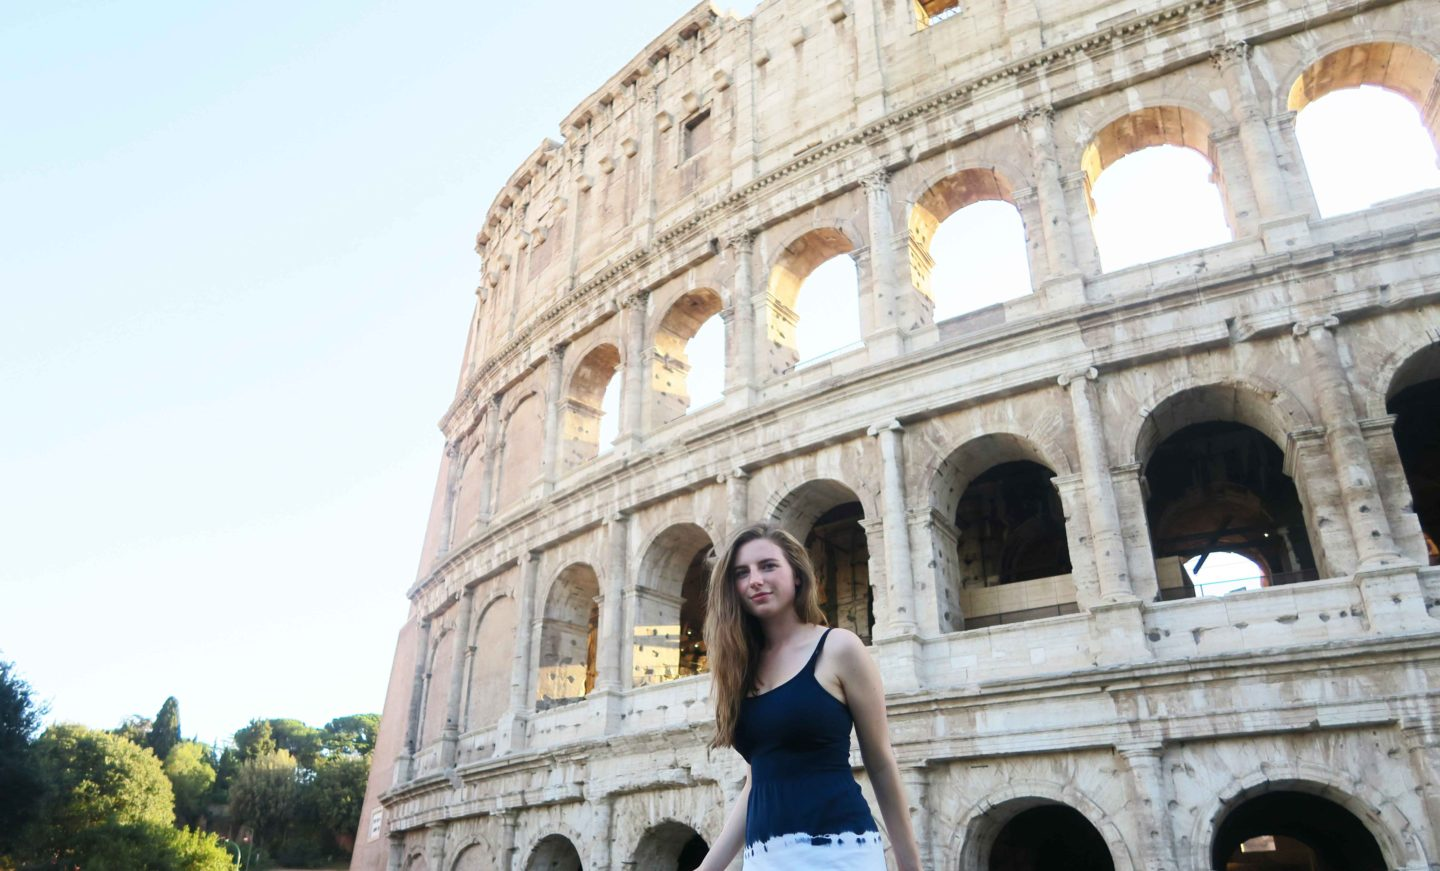 melissa carne standing in front of the colosseum in rome in italy